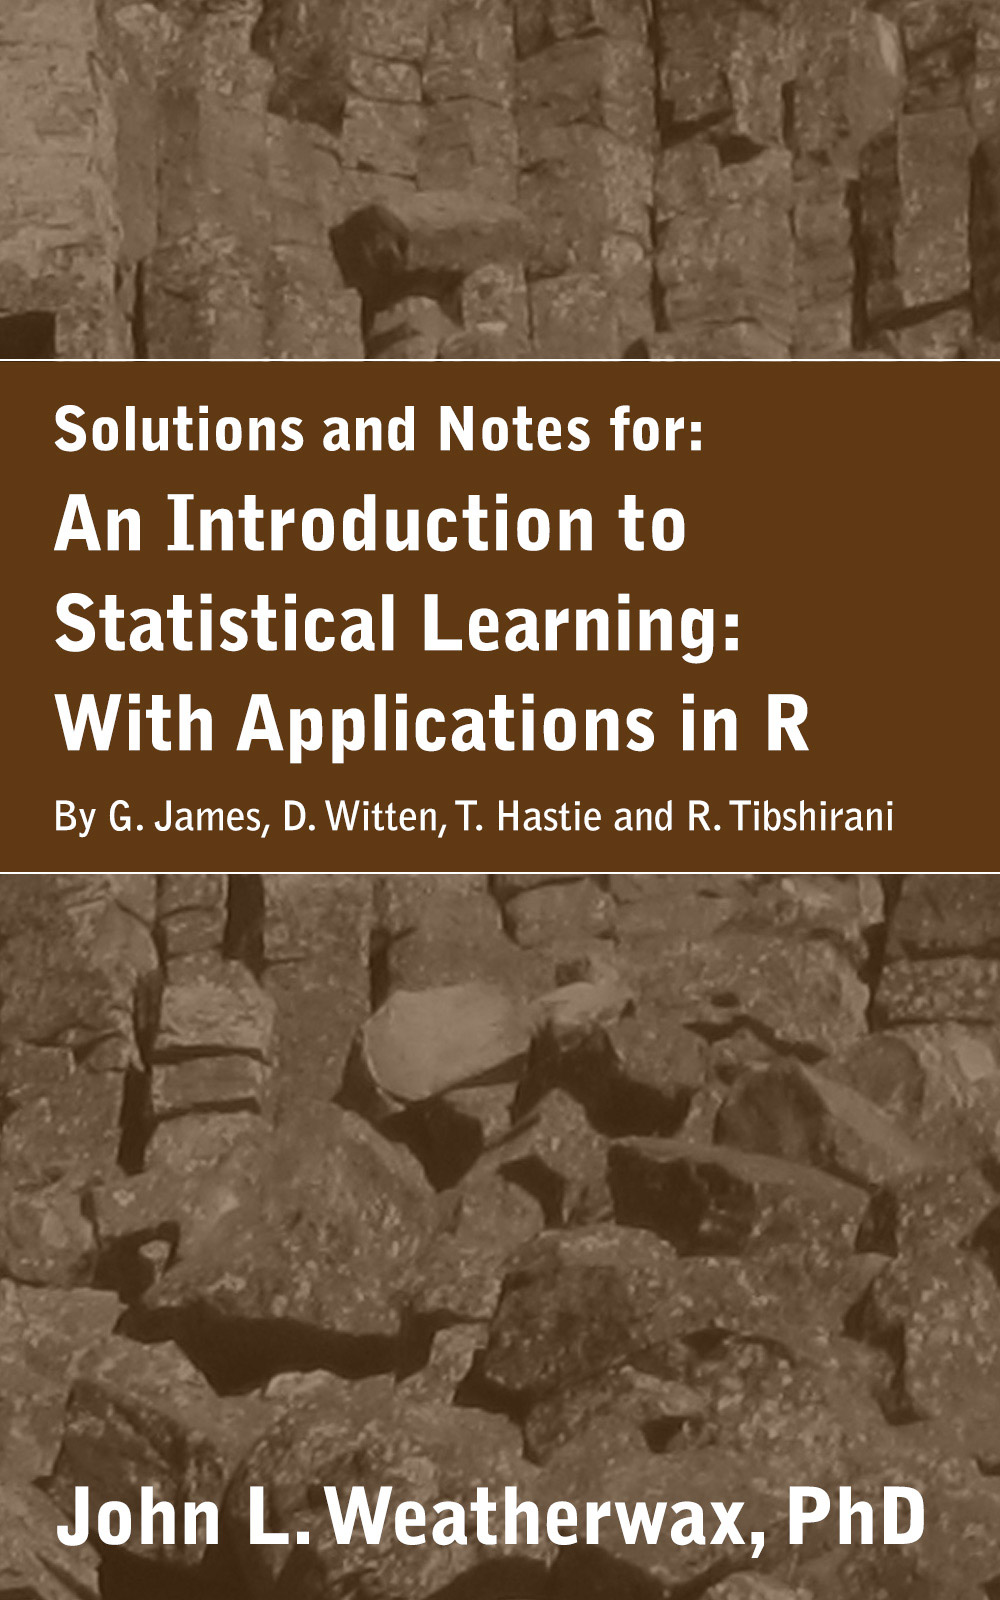 Solutions and Notes for: An Introduction to Satistical Learning: With Applications in R